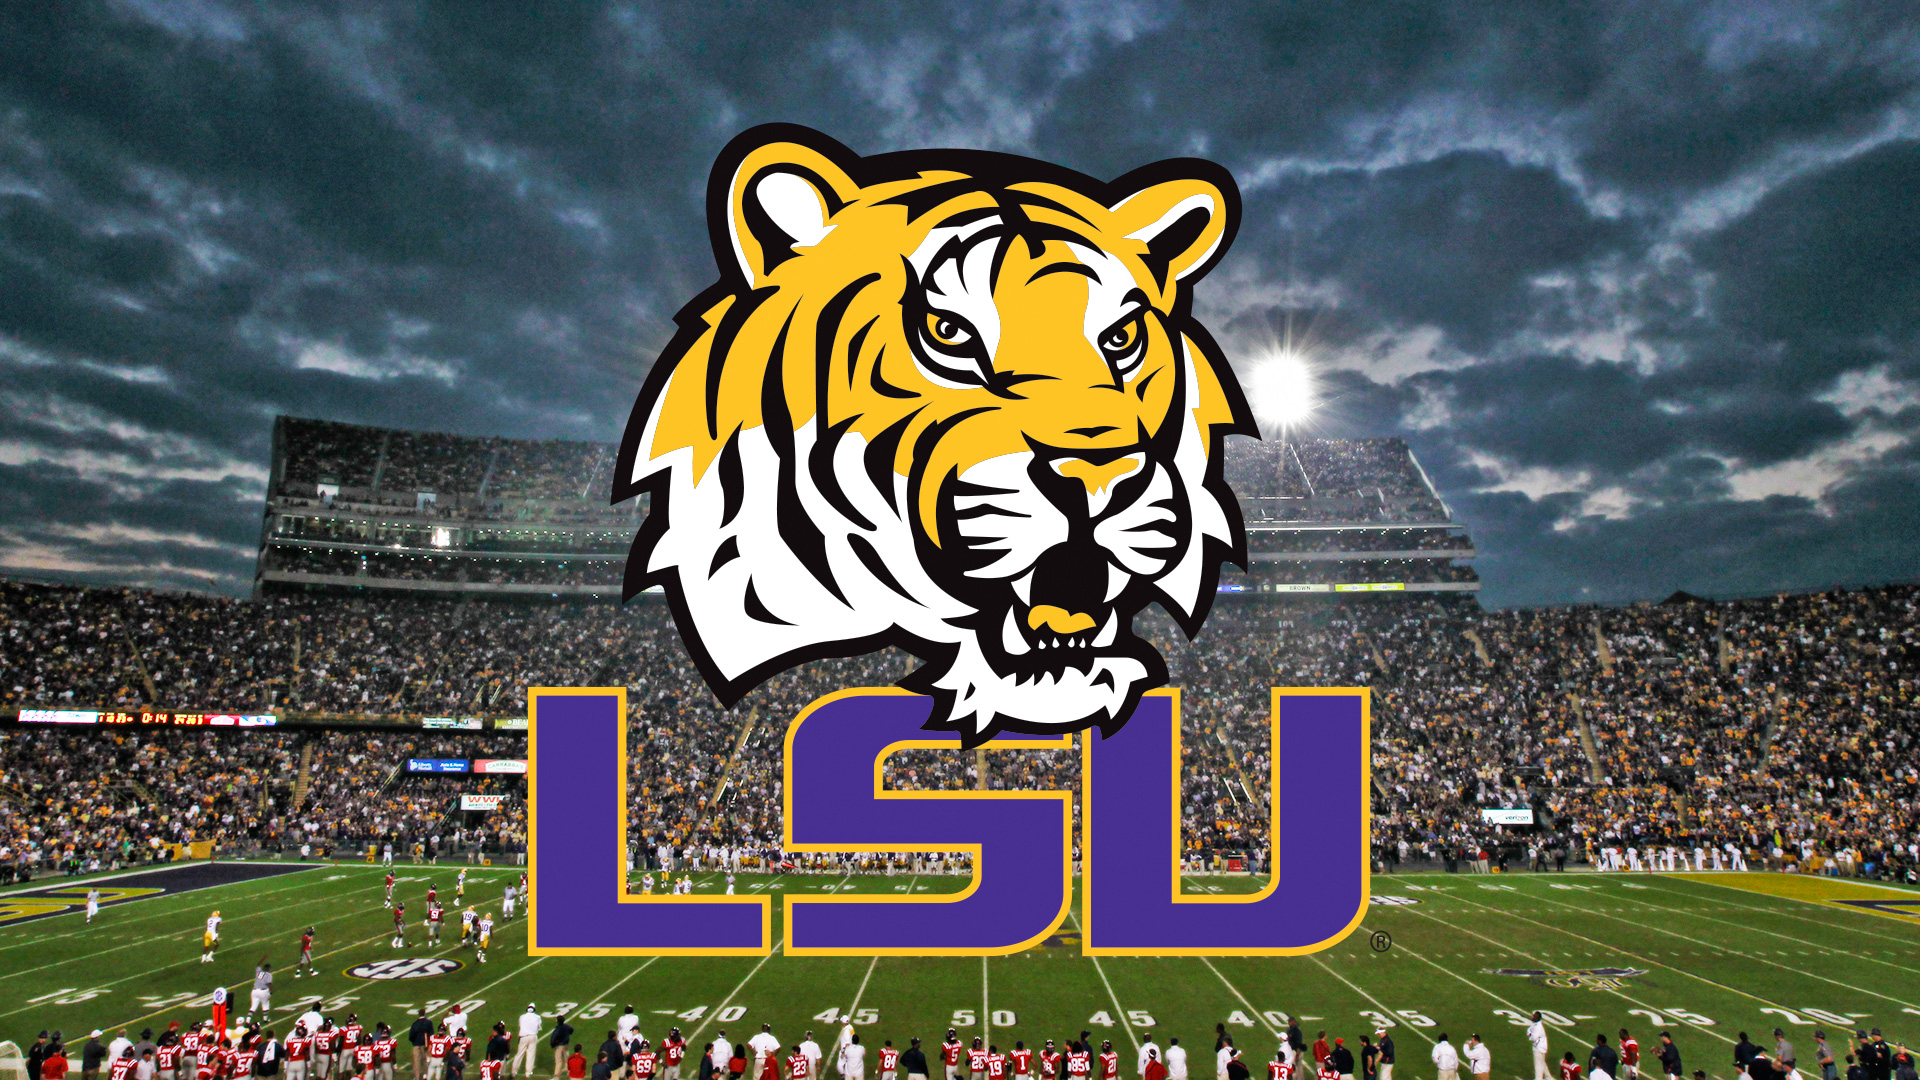 LSU-Stadium-050115-GETTY-FTR.jpg